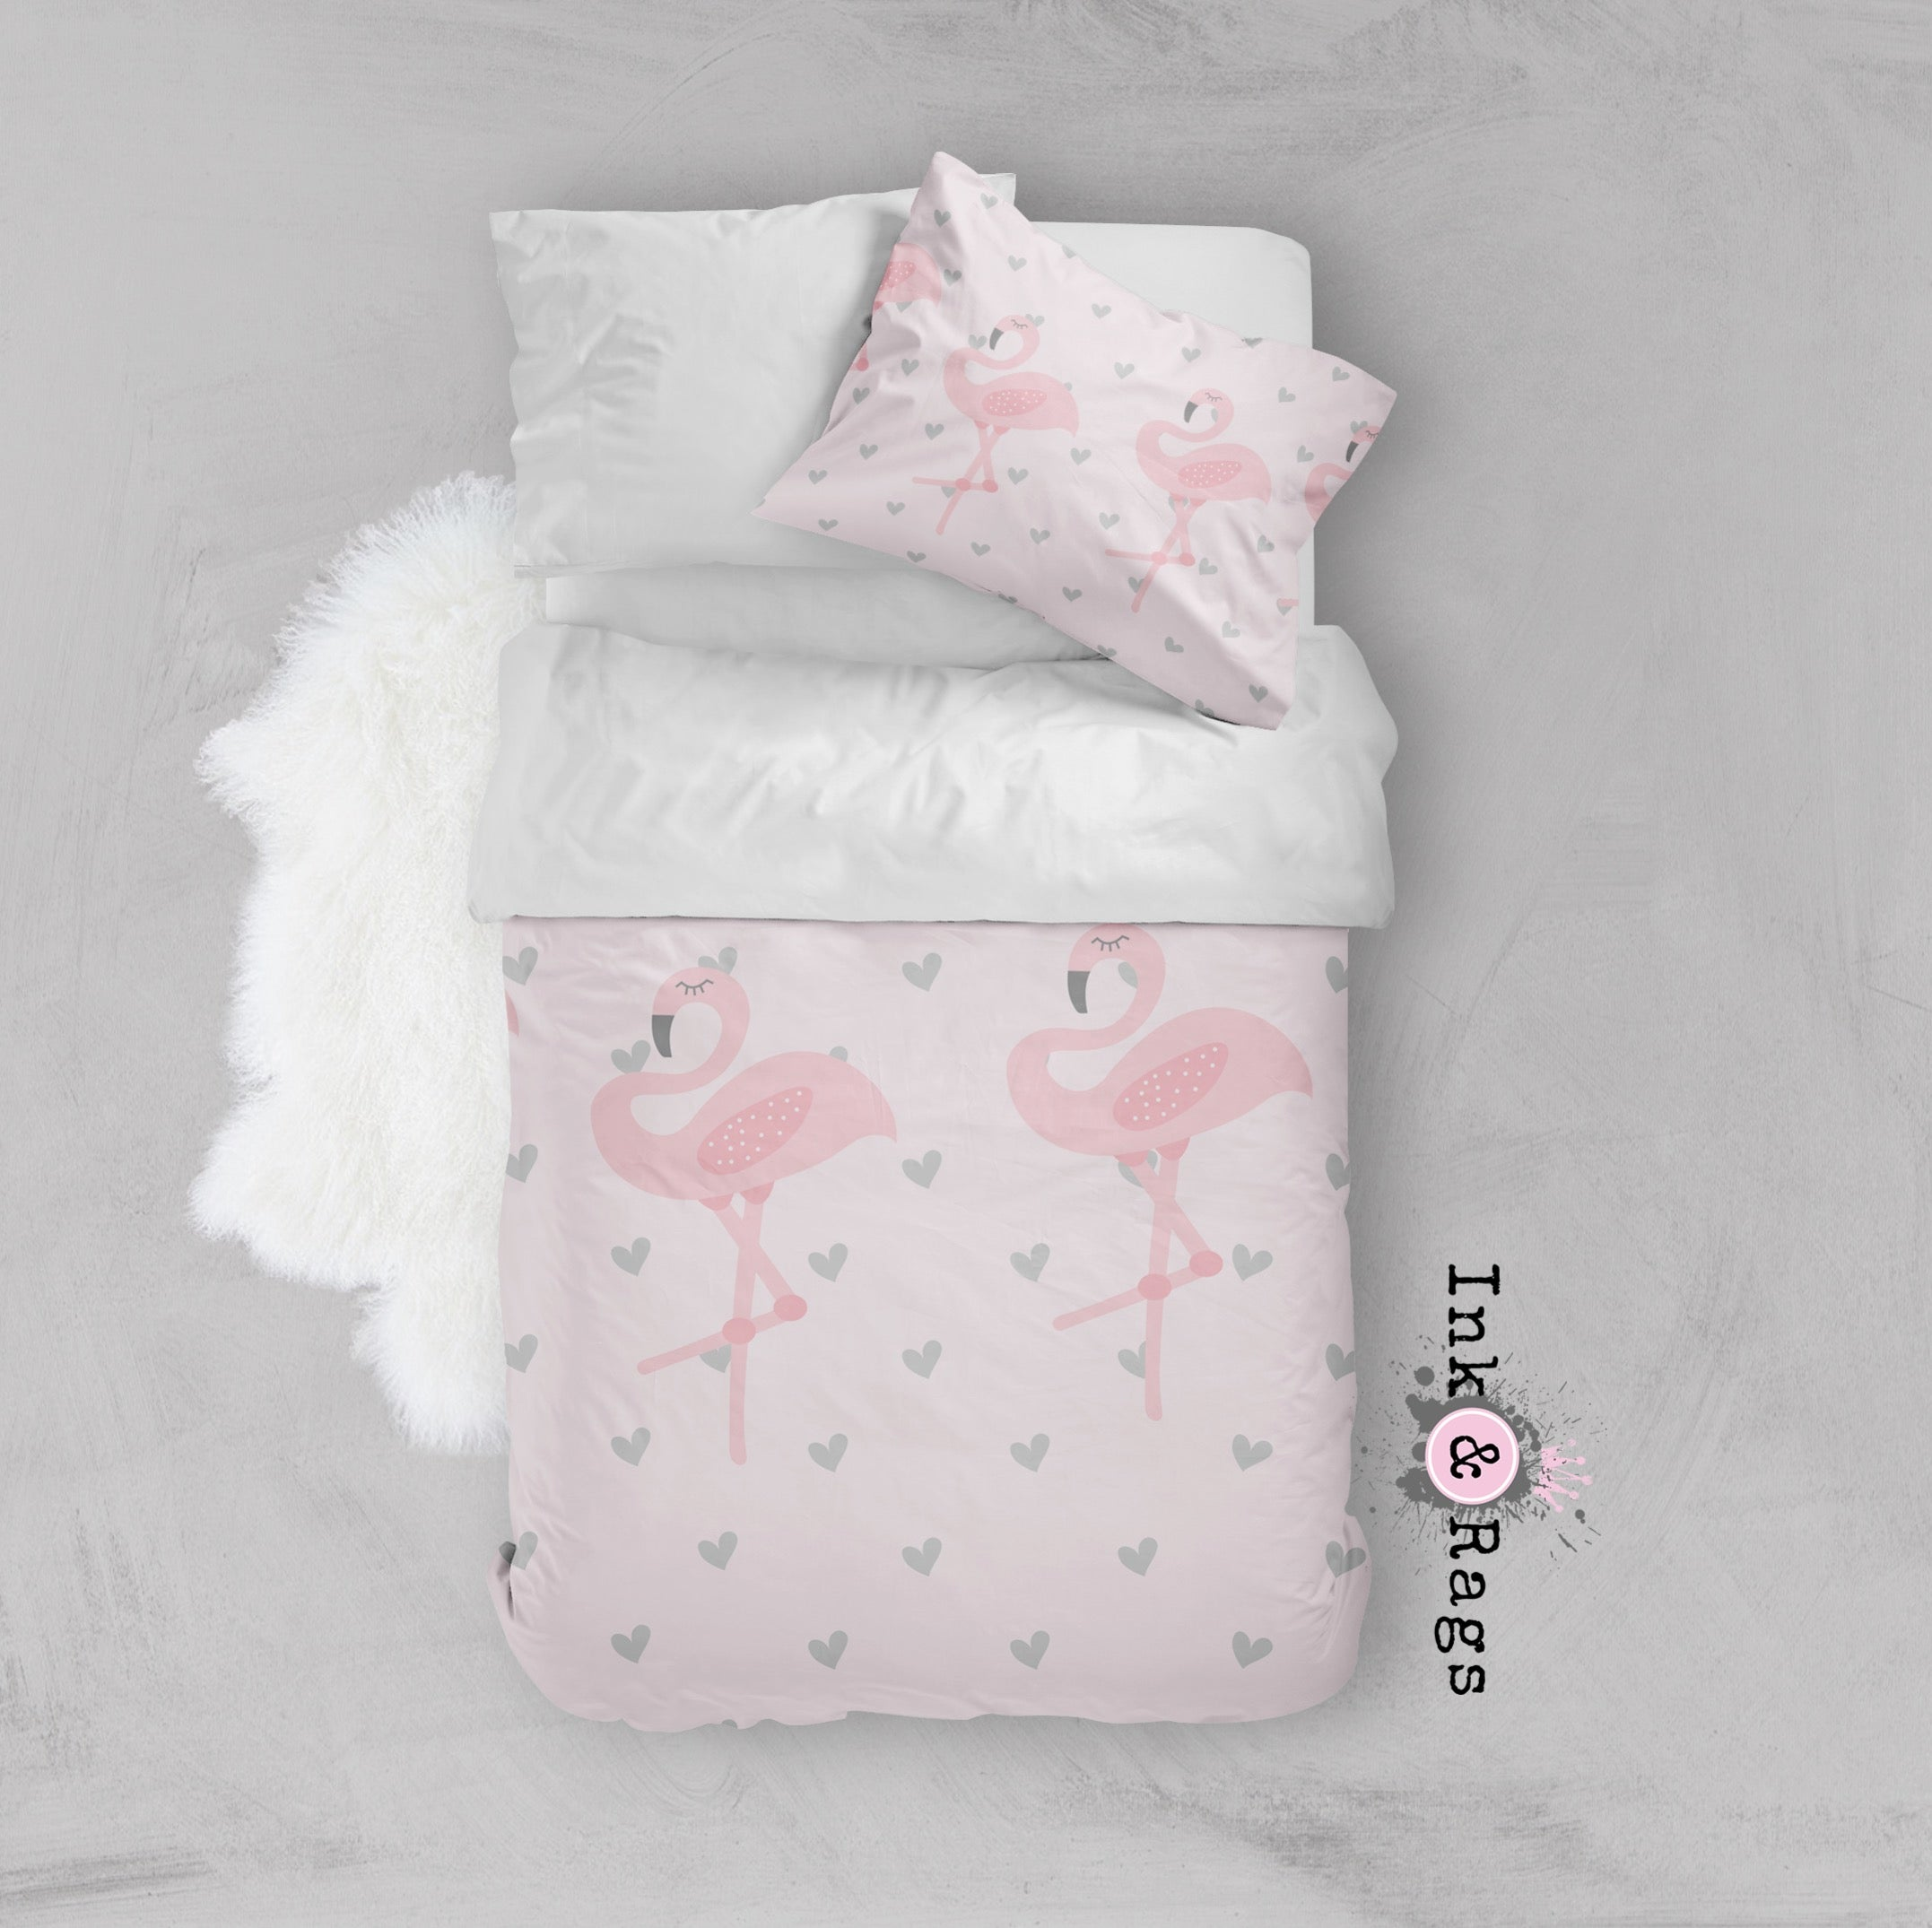 ideas marvelous gray stupendous grey sets full size of concept bedding pink mint picture and crib baby black comforter nursery beddingmint unique set comforters